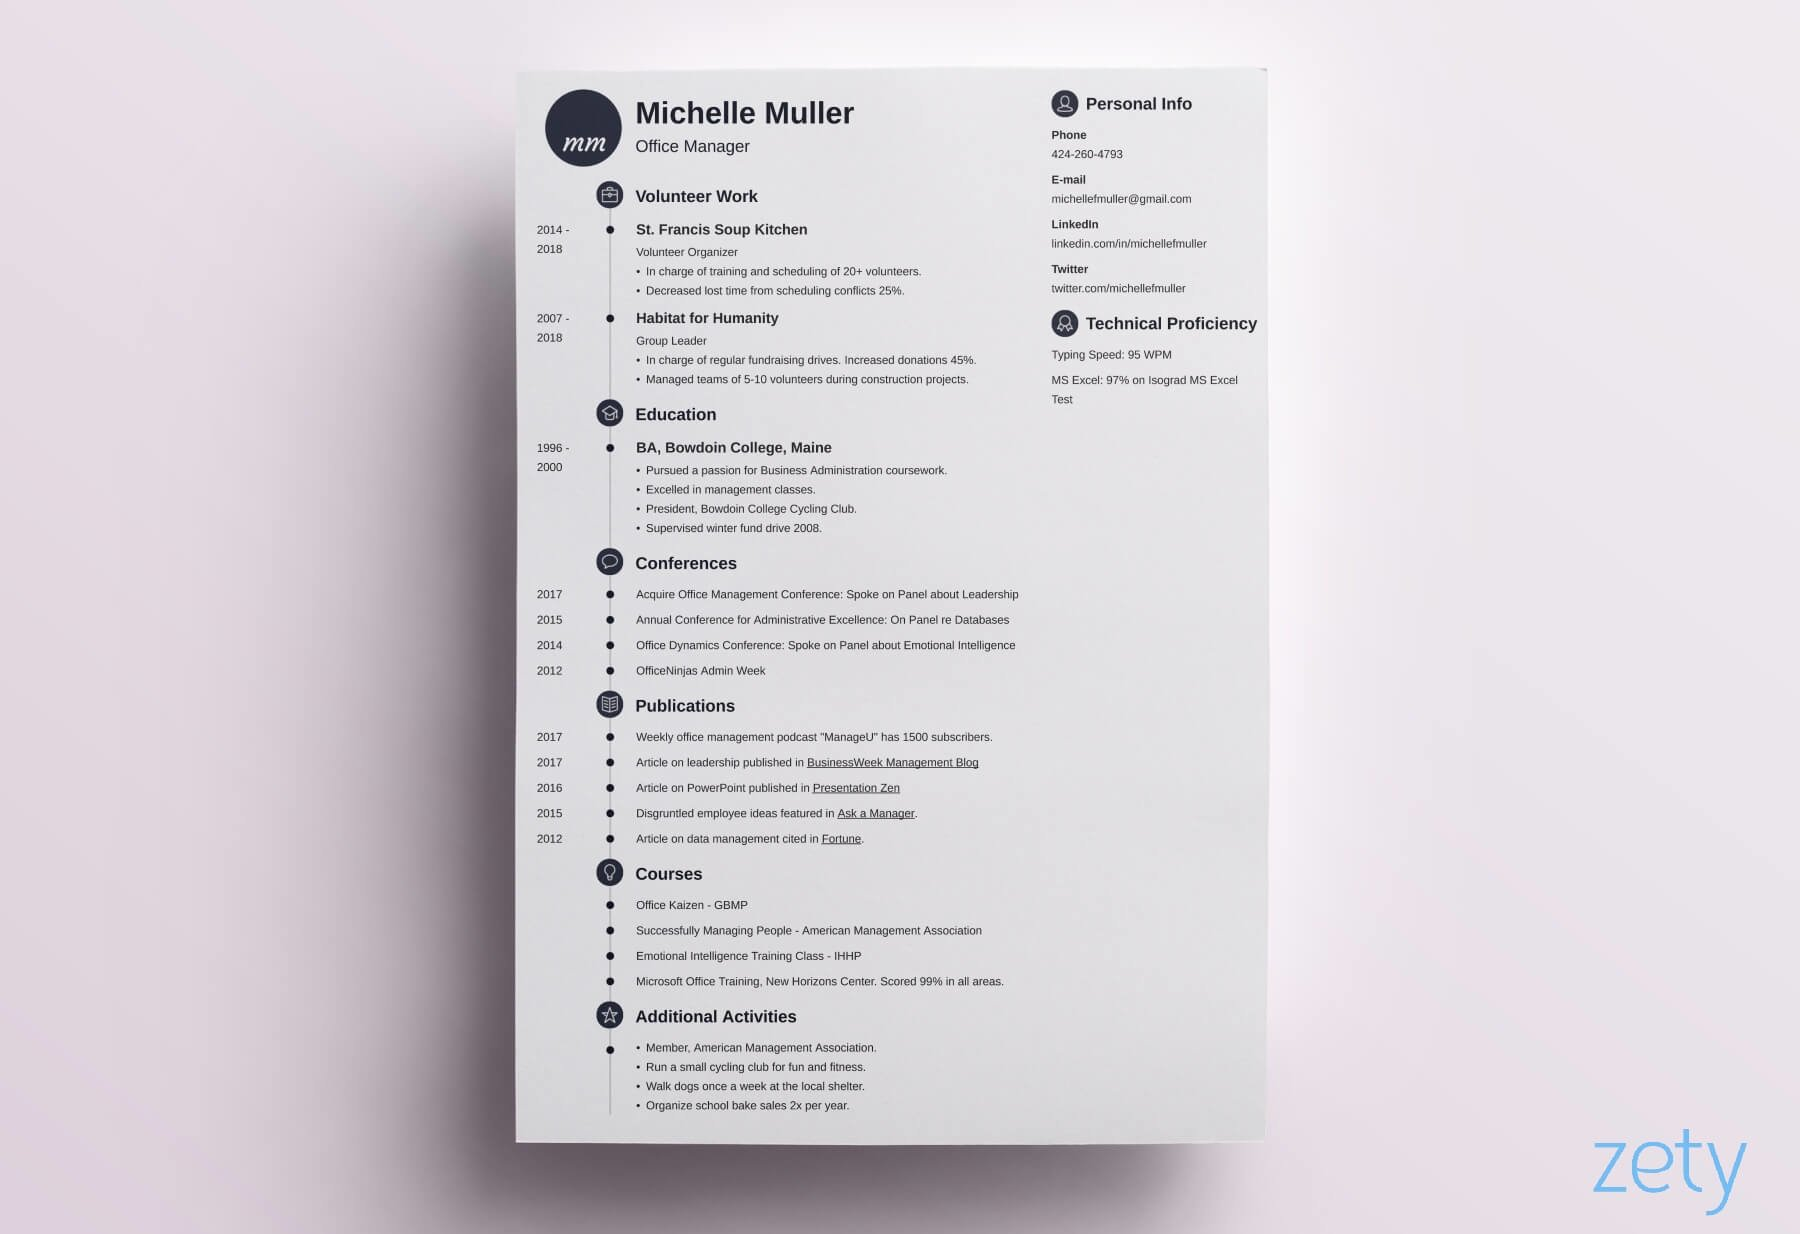 resume it crush your chances format tips best two primo london template inventory clerk Resume Best Two Page Resume Format